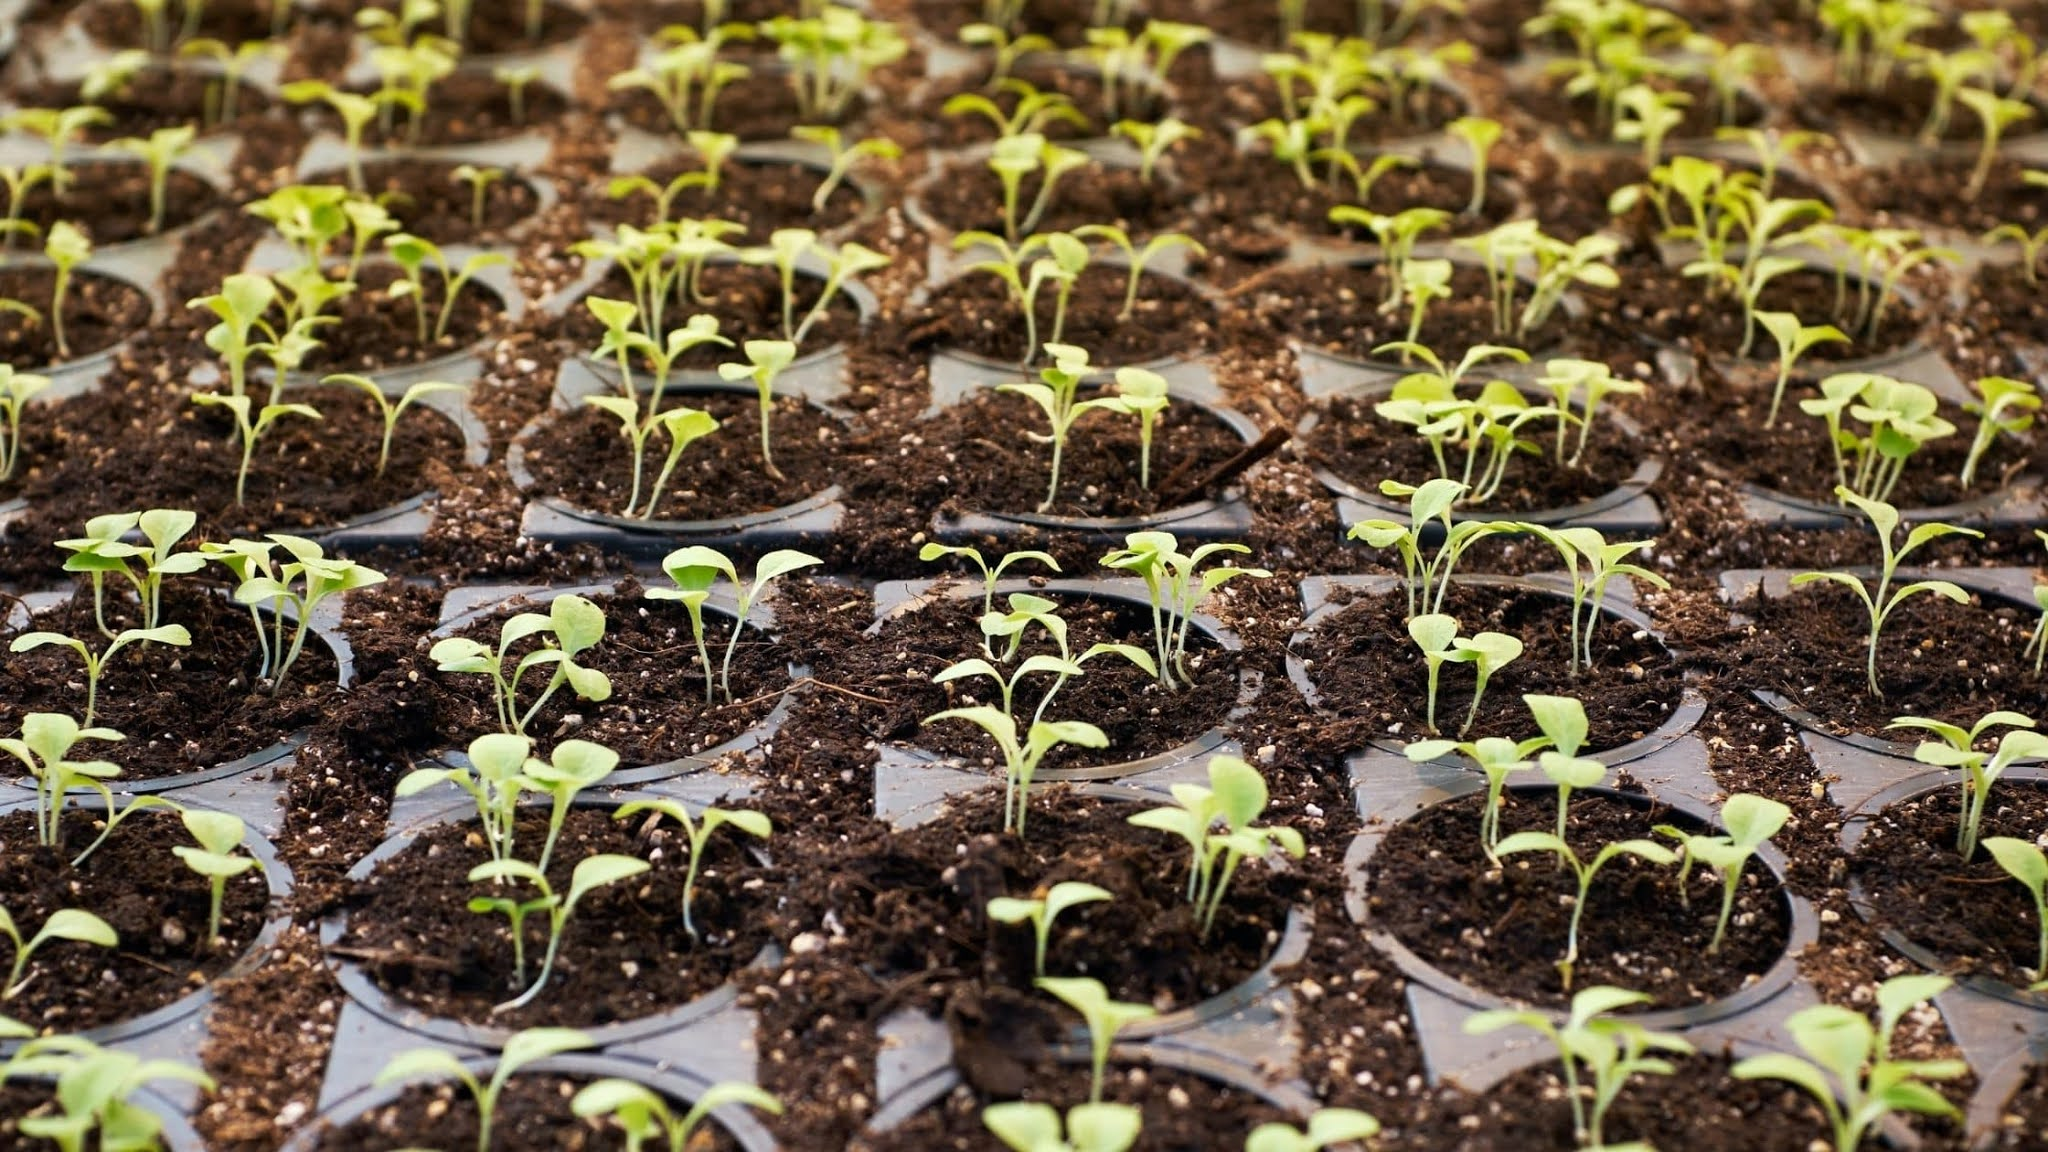 Disadvantages of hydroponics: A Researchers Global Report Conclusion